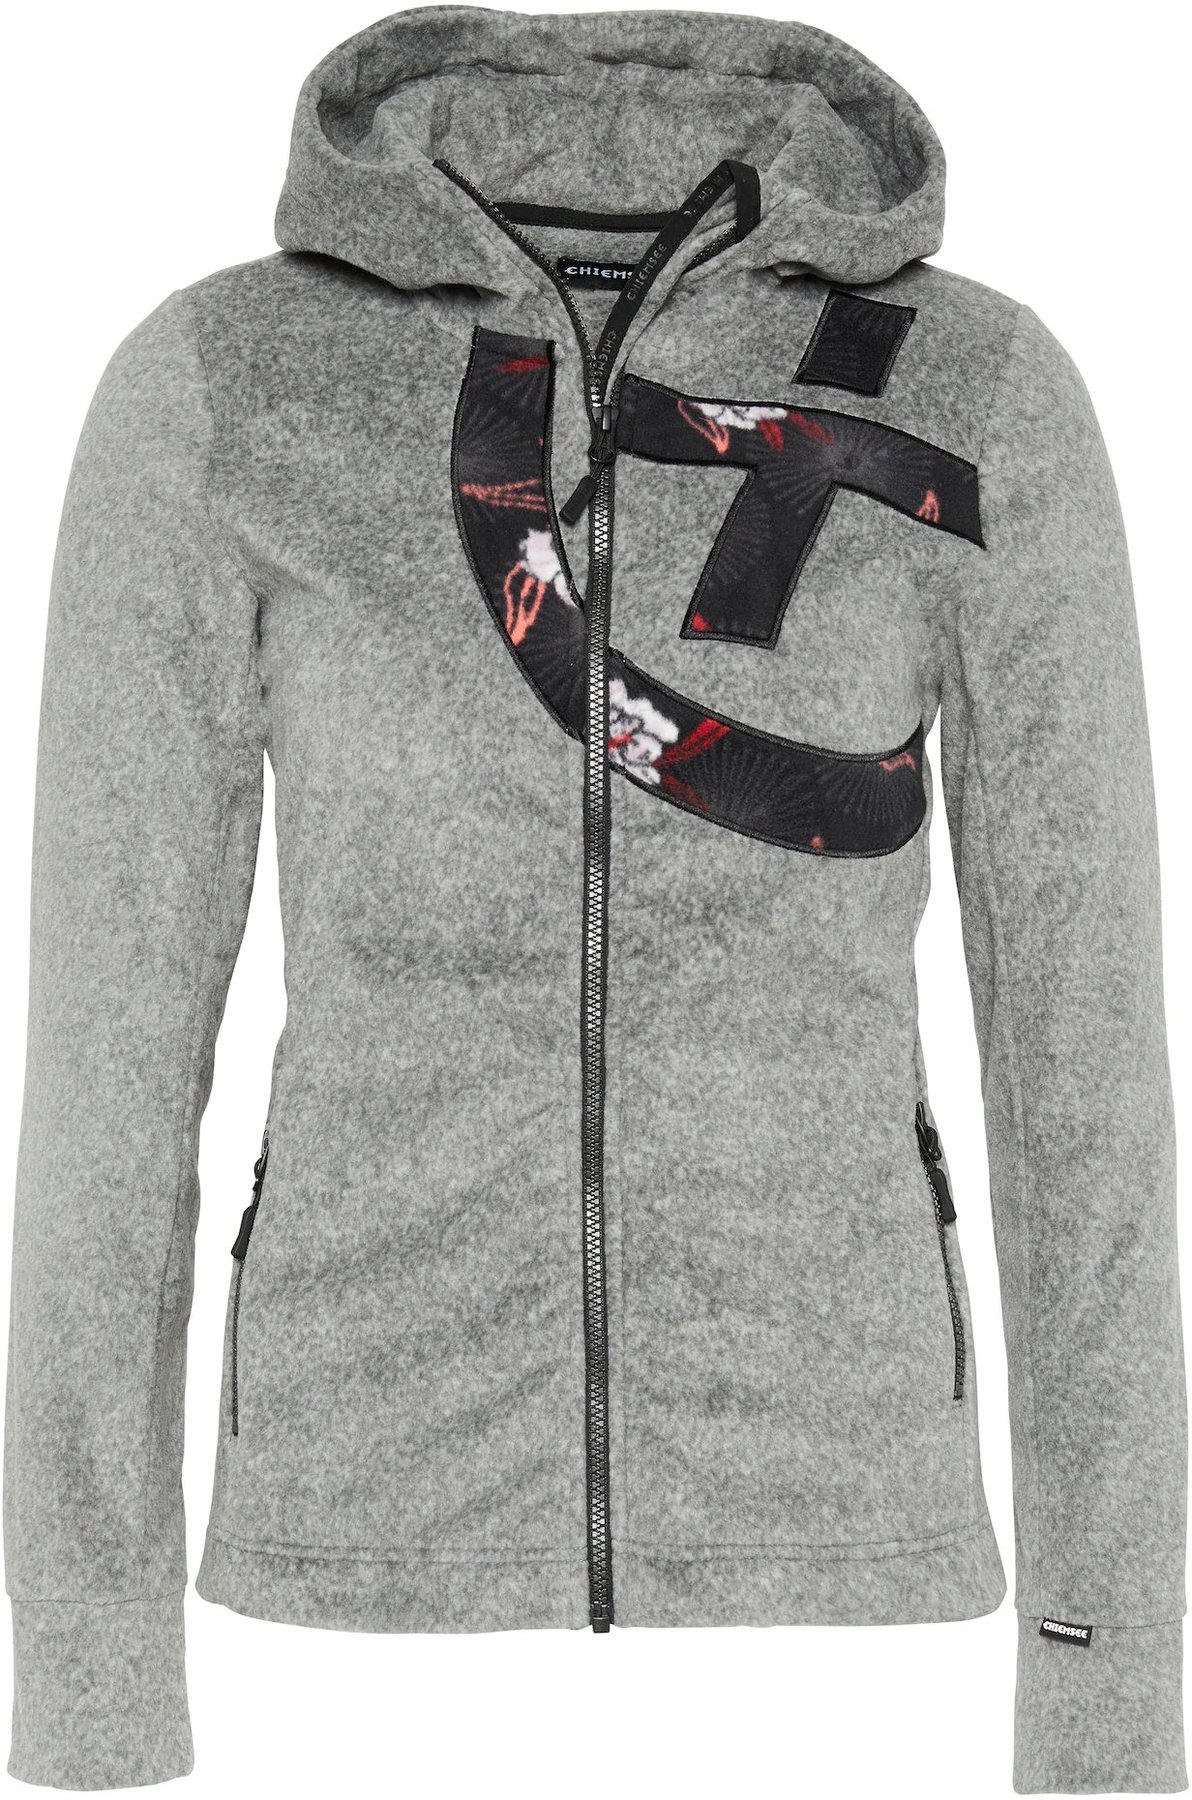 chiemsee fleece jacke damen